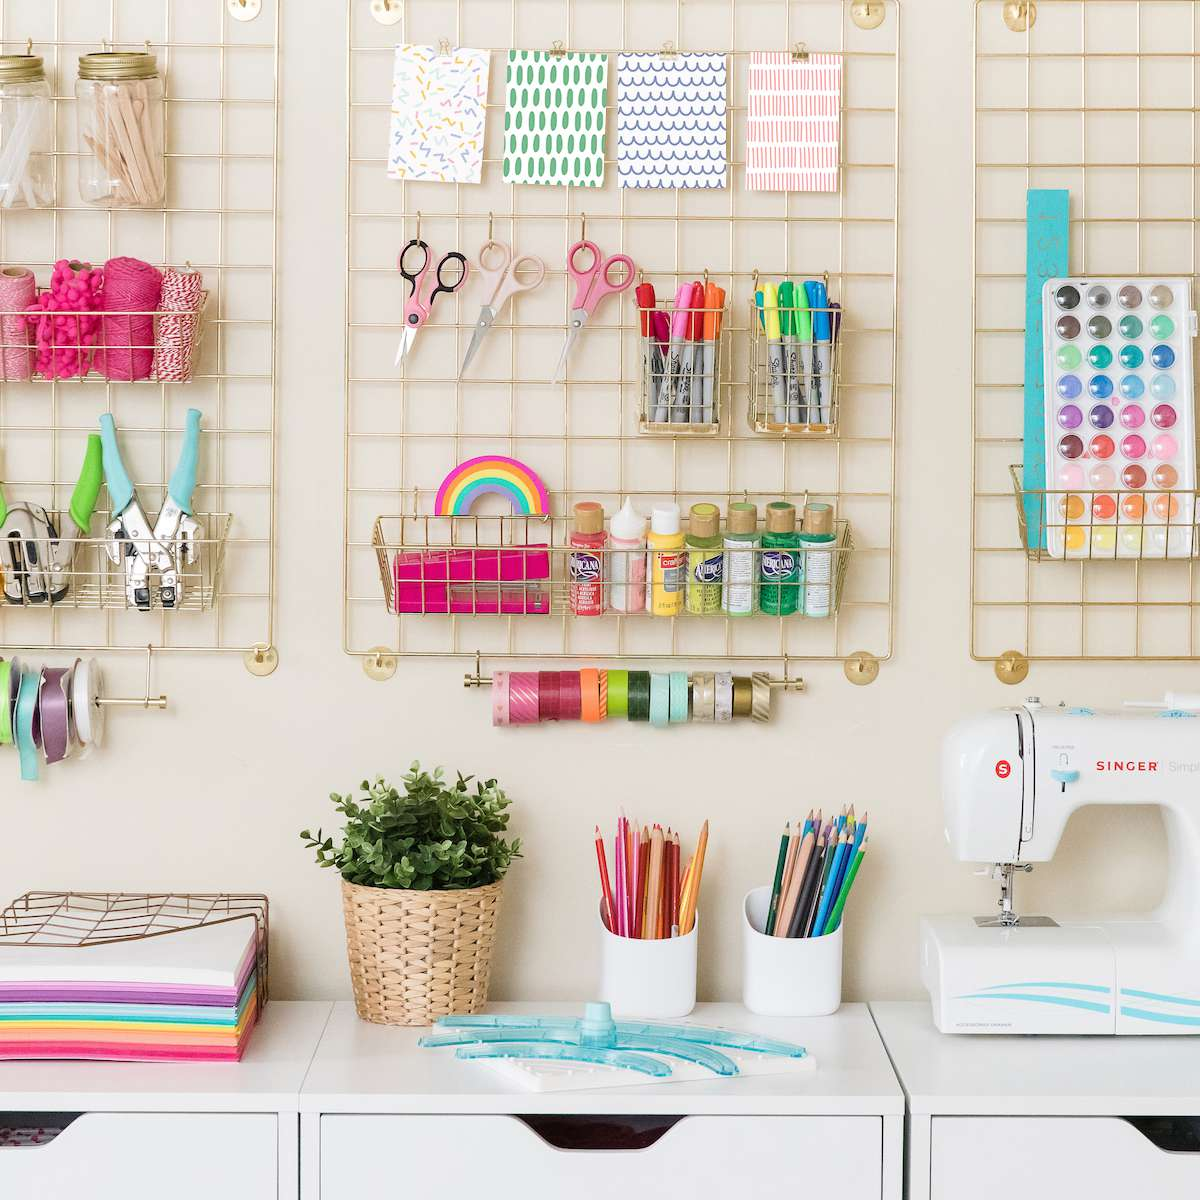 A well organized craft room filled with colorful art supplies